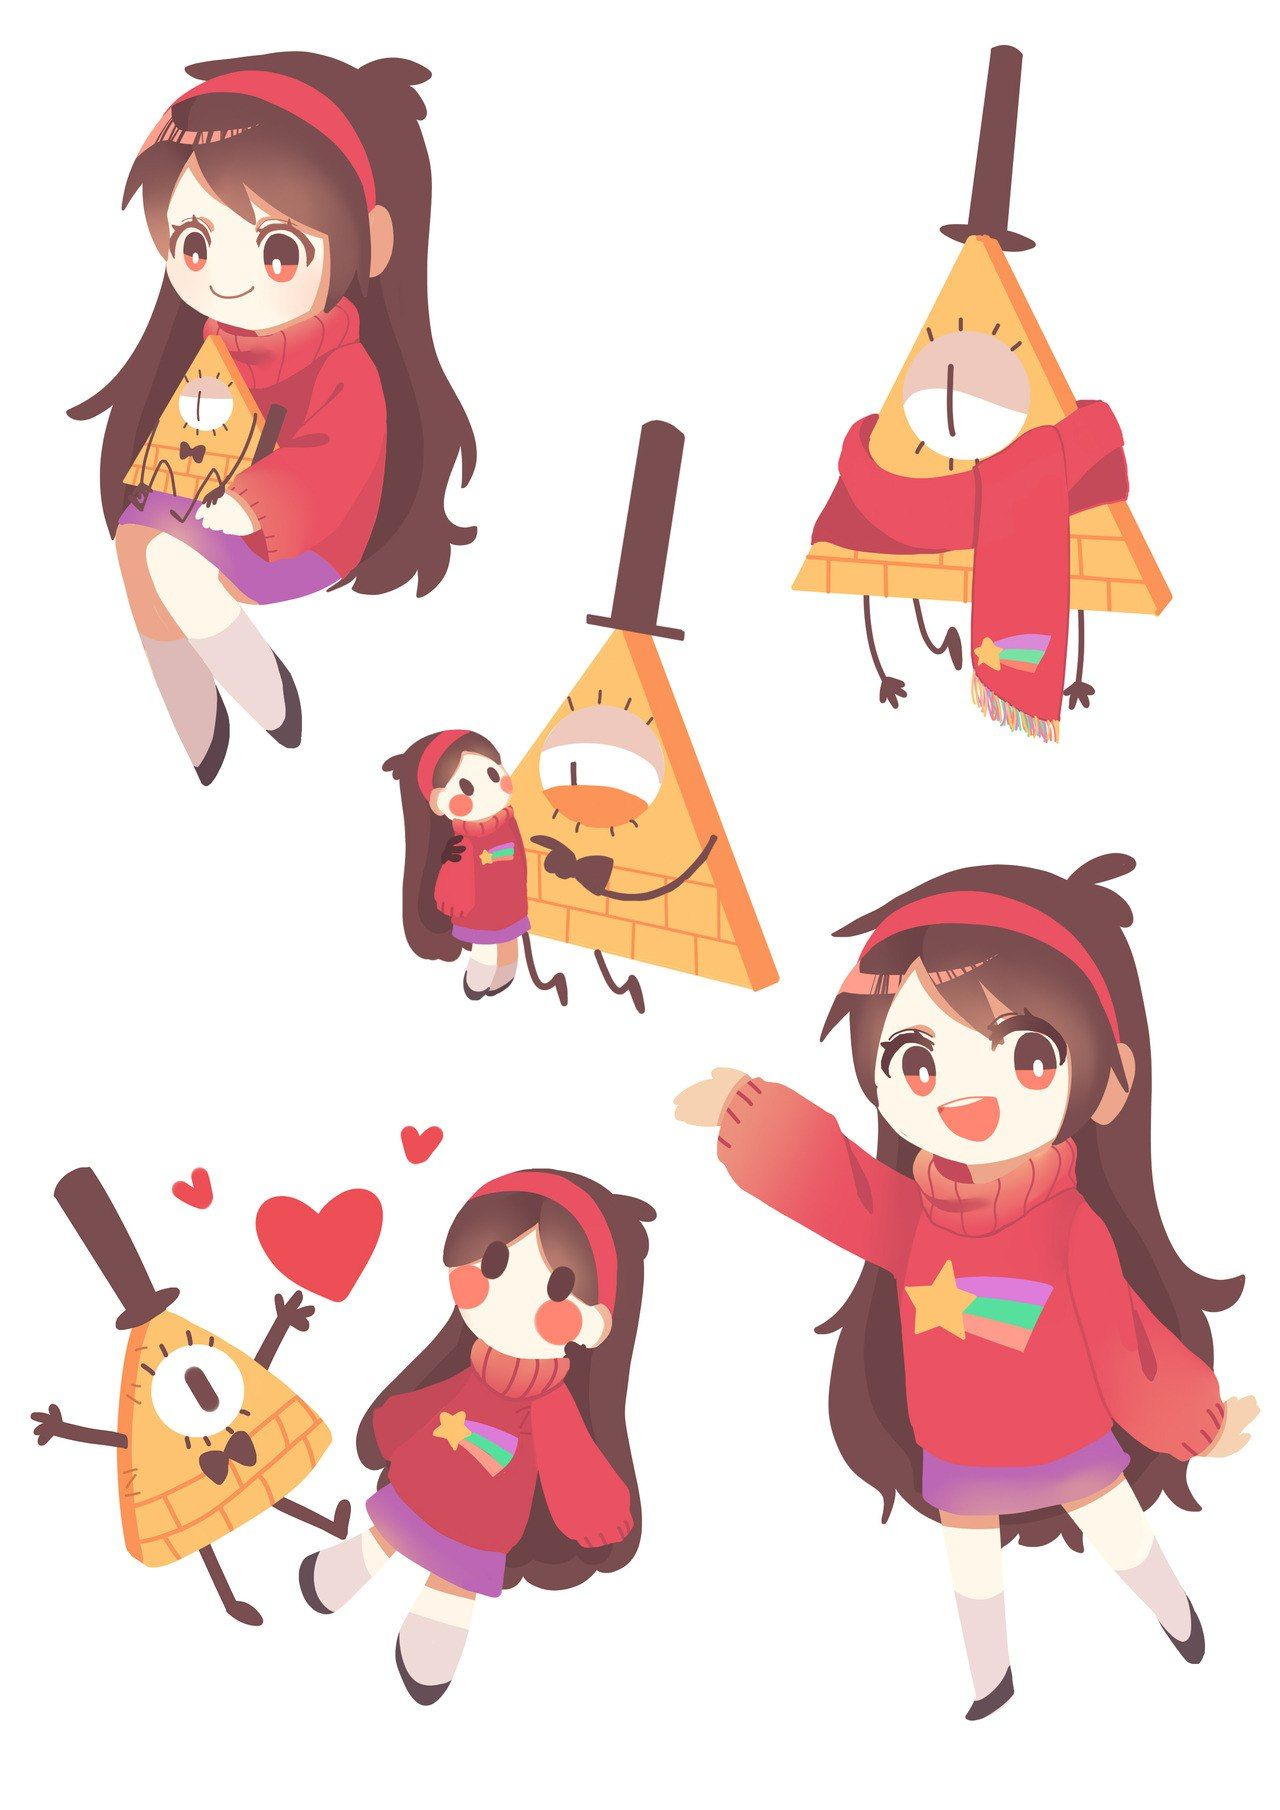 pin by sora on gravity falls pinterest gravity falls mabill and